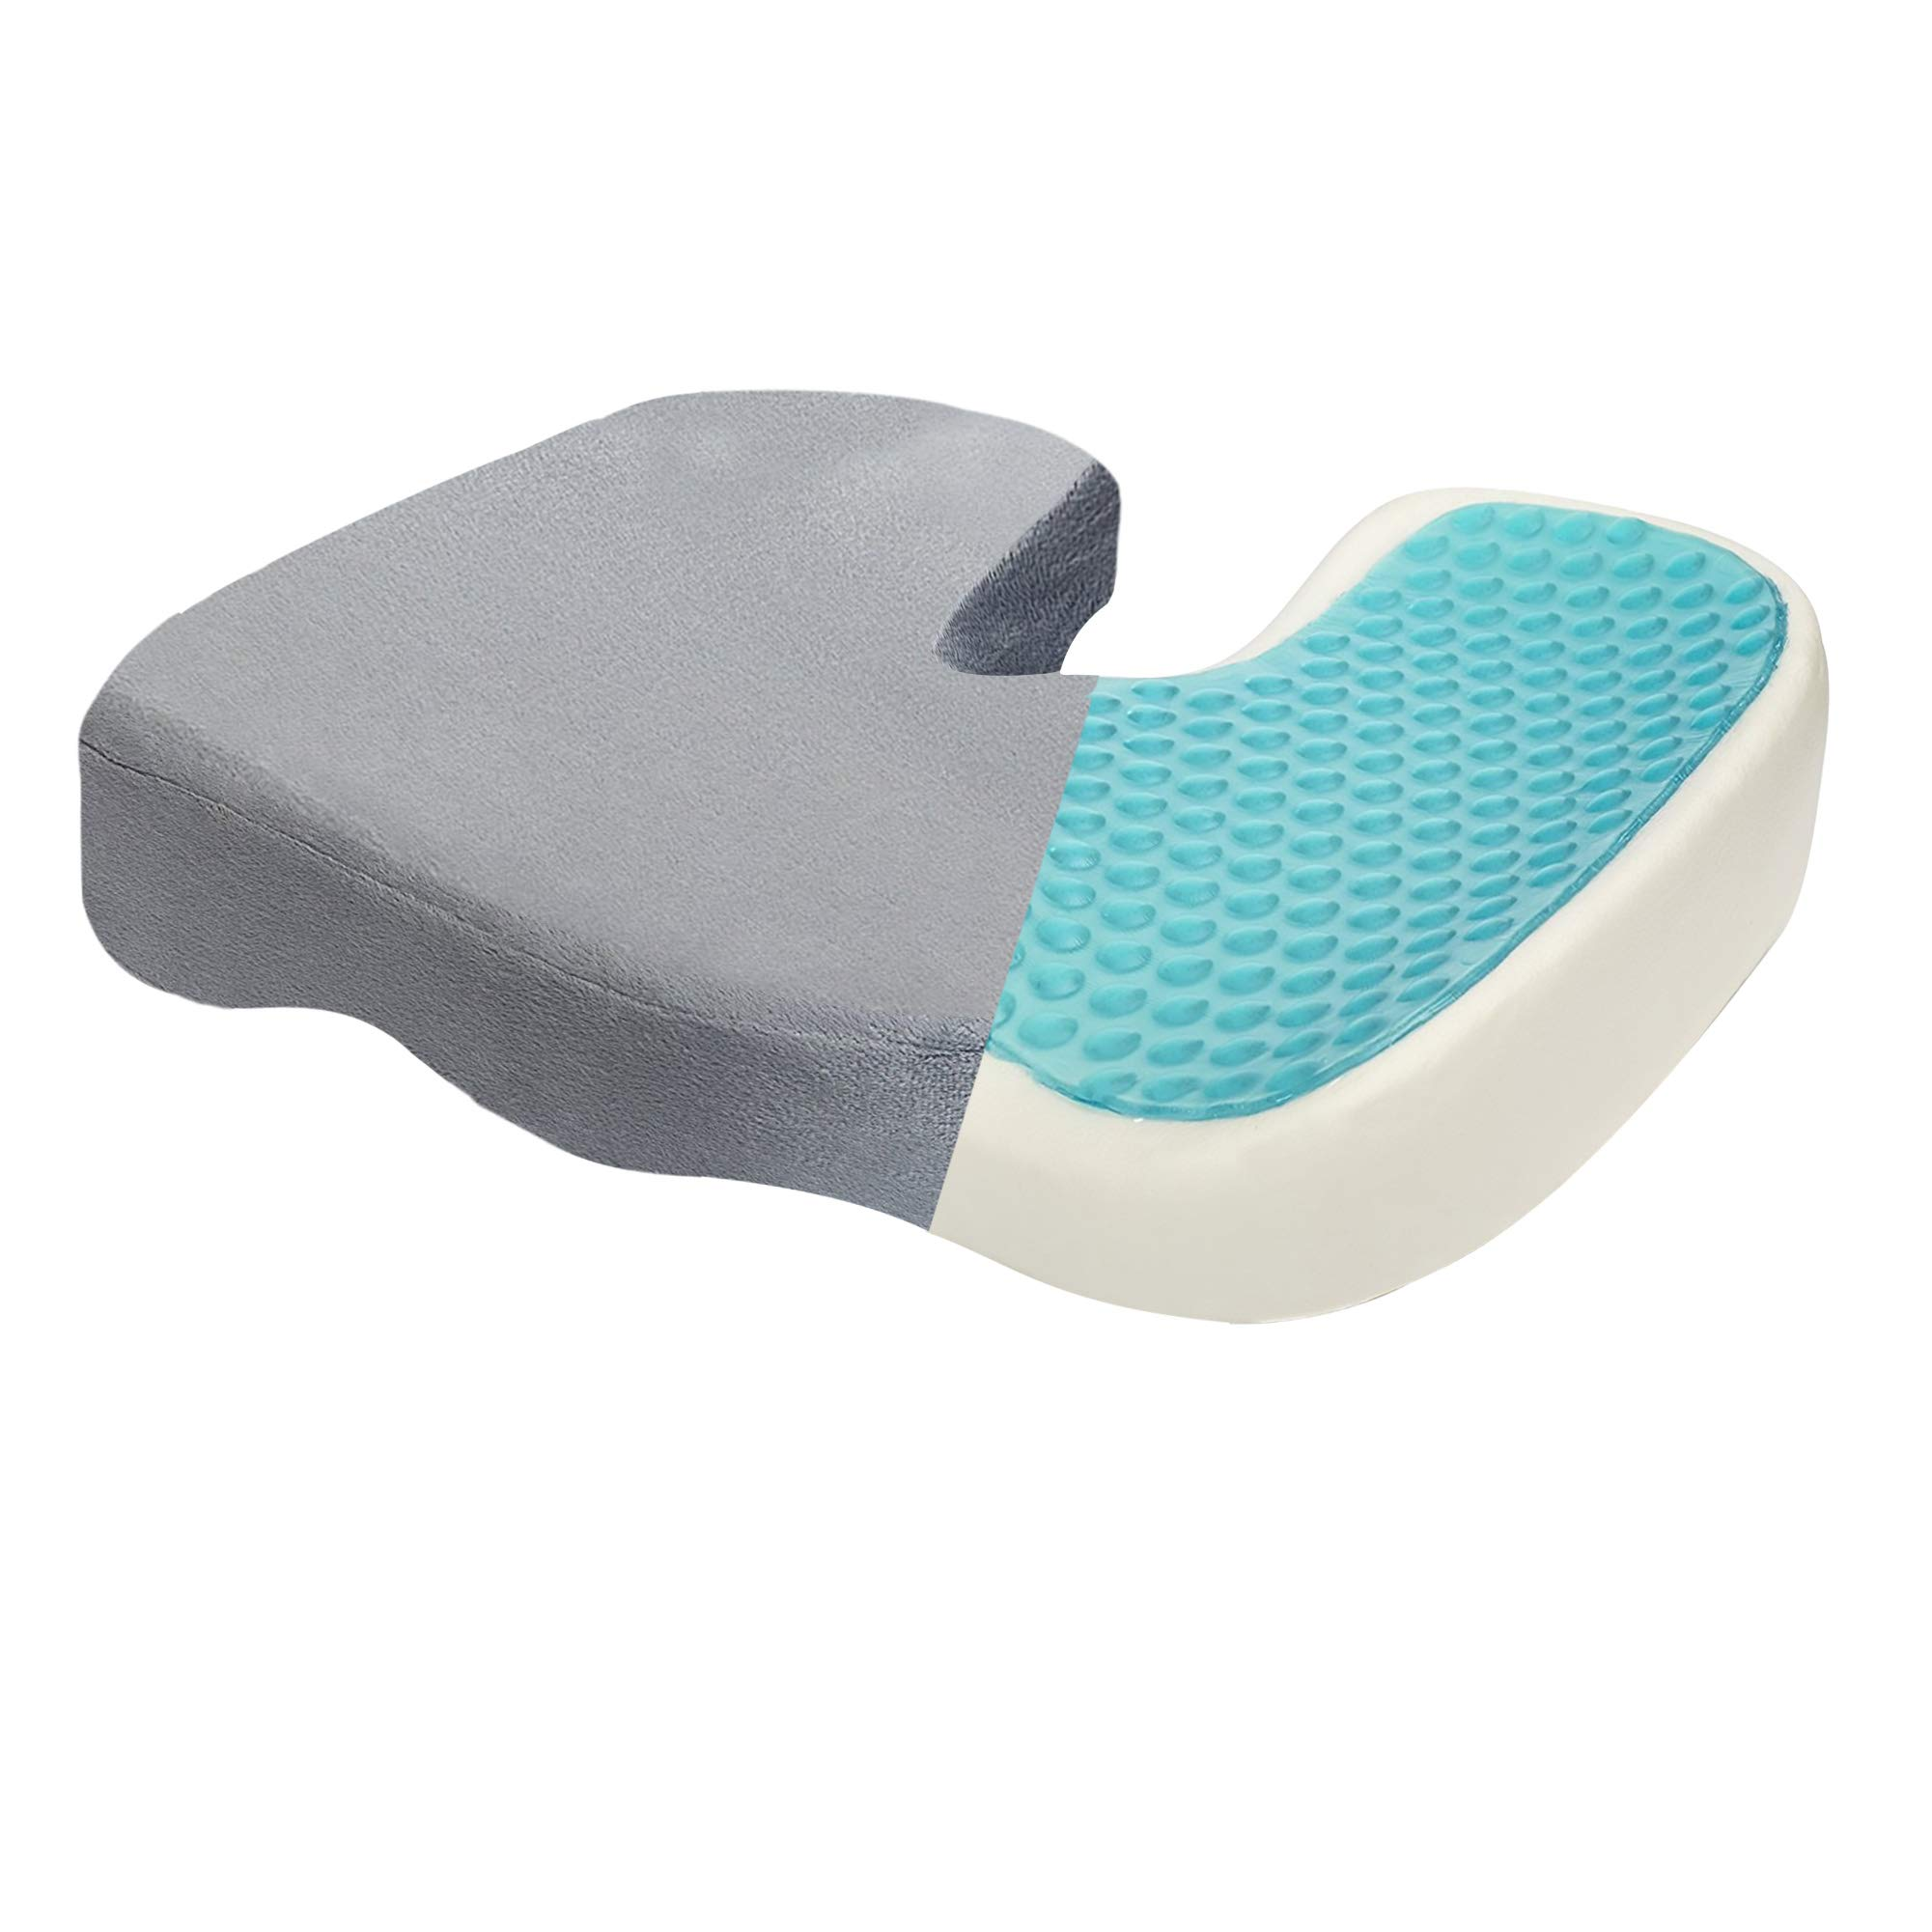 Dr. Flink Coccyx Seat Cushion Tailbone Pain Relief Pillow, Cool Gel-Enhanced - Memory Foam, Orthopedic Quality Comfort & Large Designed, Support & Relives Back & Sciatica, for Car Home, Office, Chair by Dr. Flink